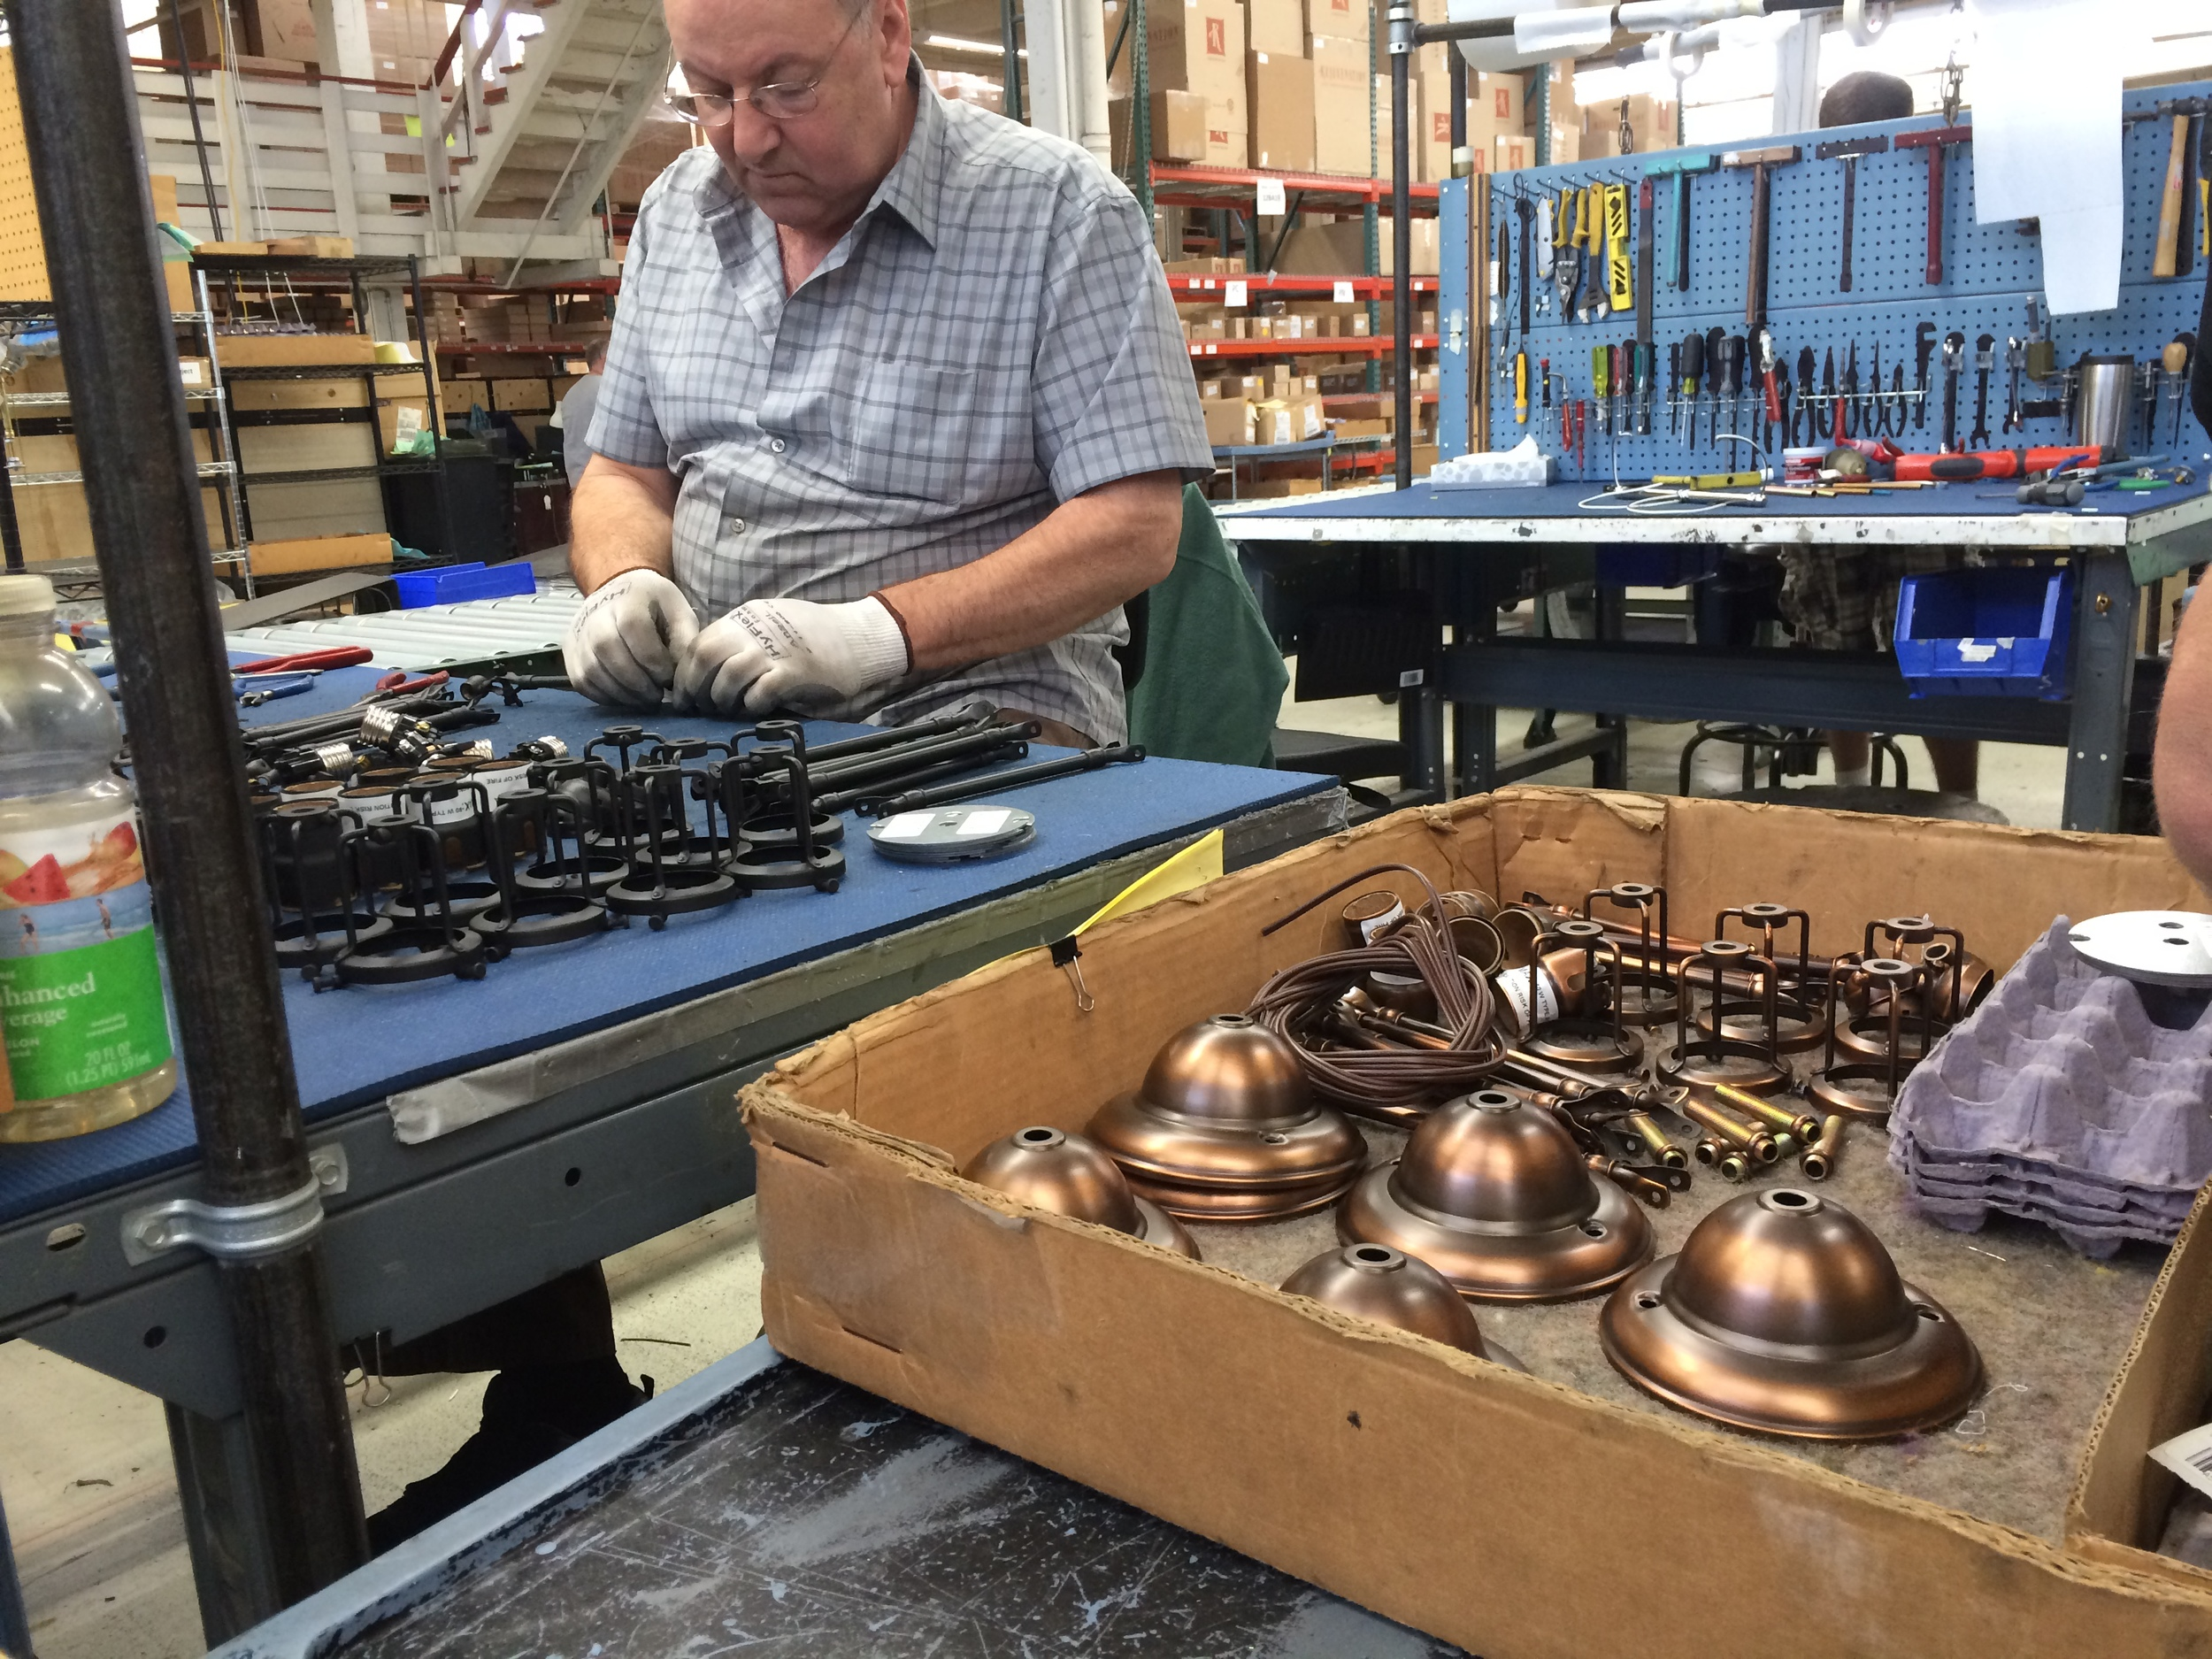 rejuvenation factory tour, american made fixtures, hand crafter fixtures in portland